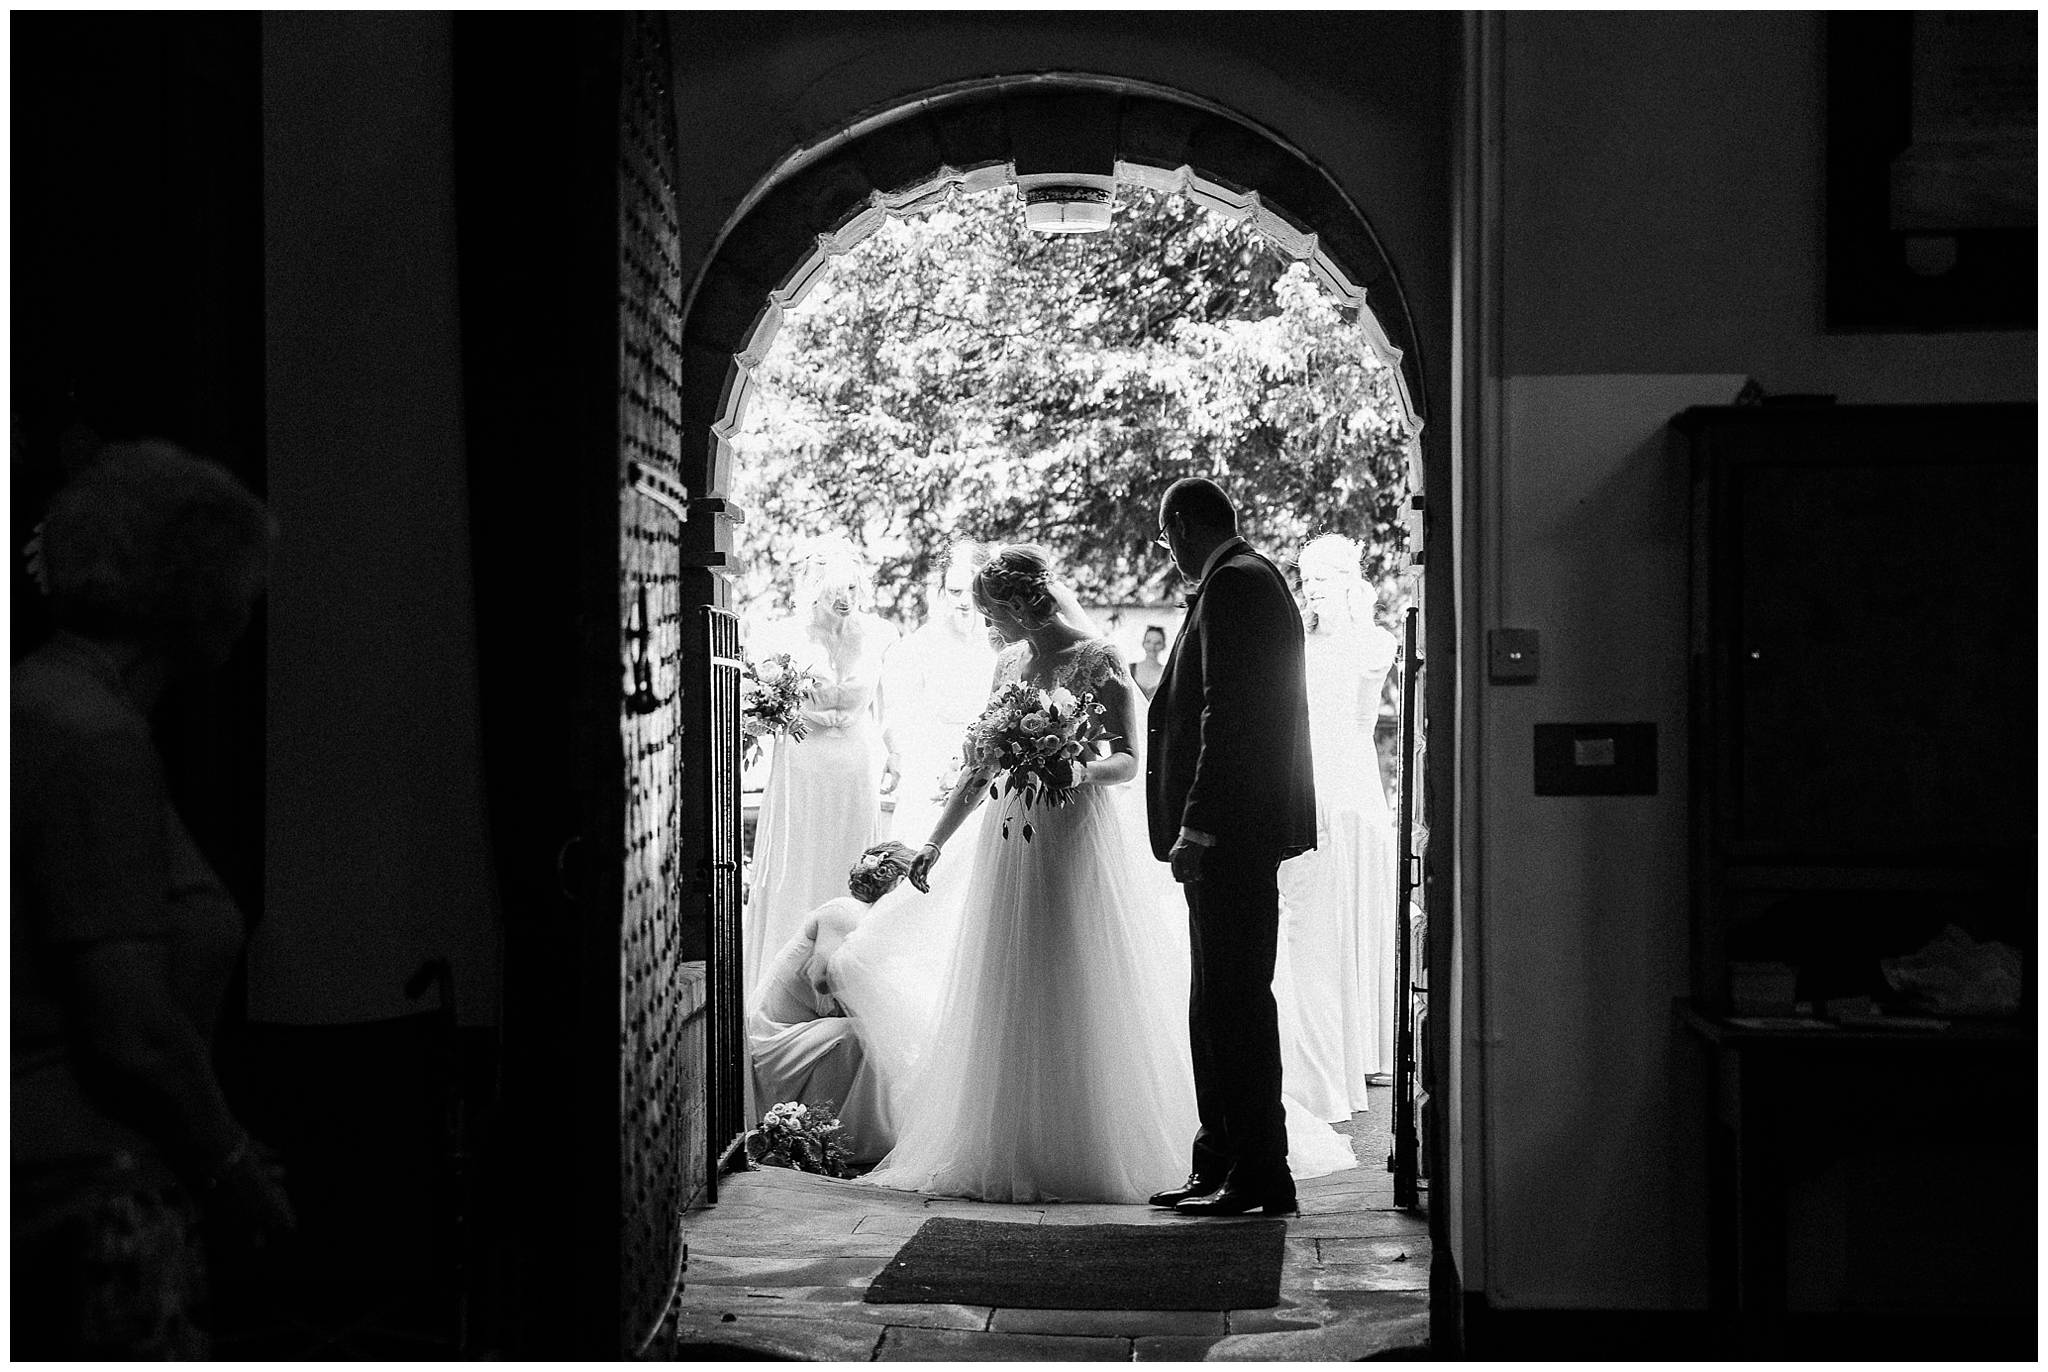 a black and white silhouette of the bride in the church entrance while her bridesmaids arrange the back of her dress